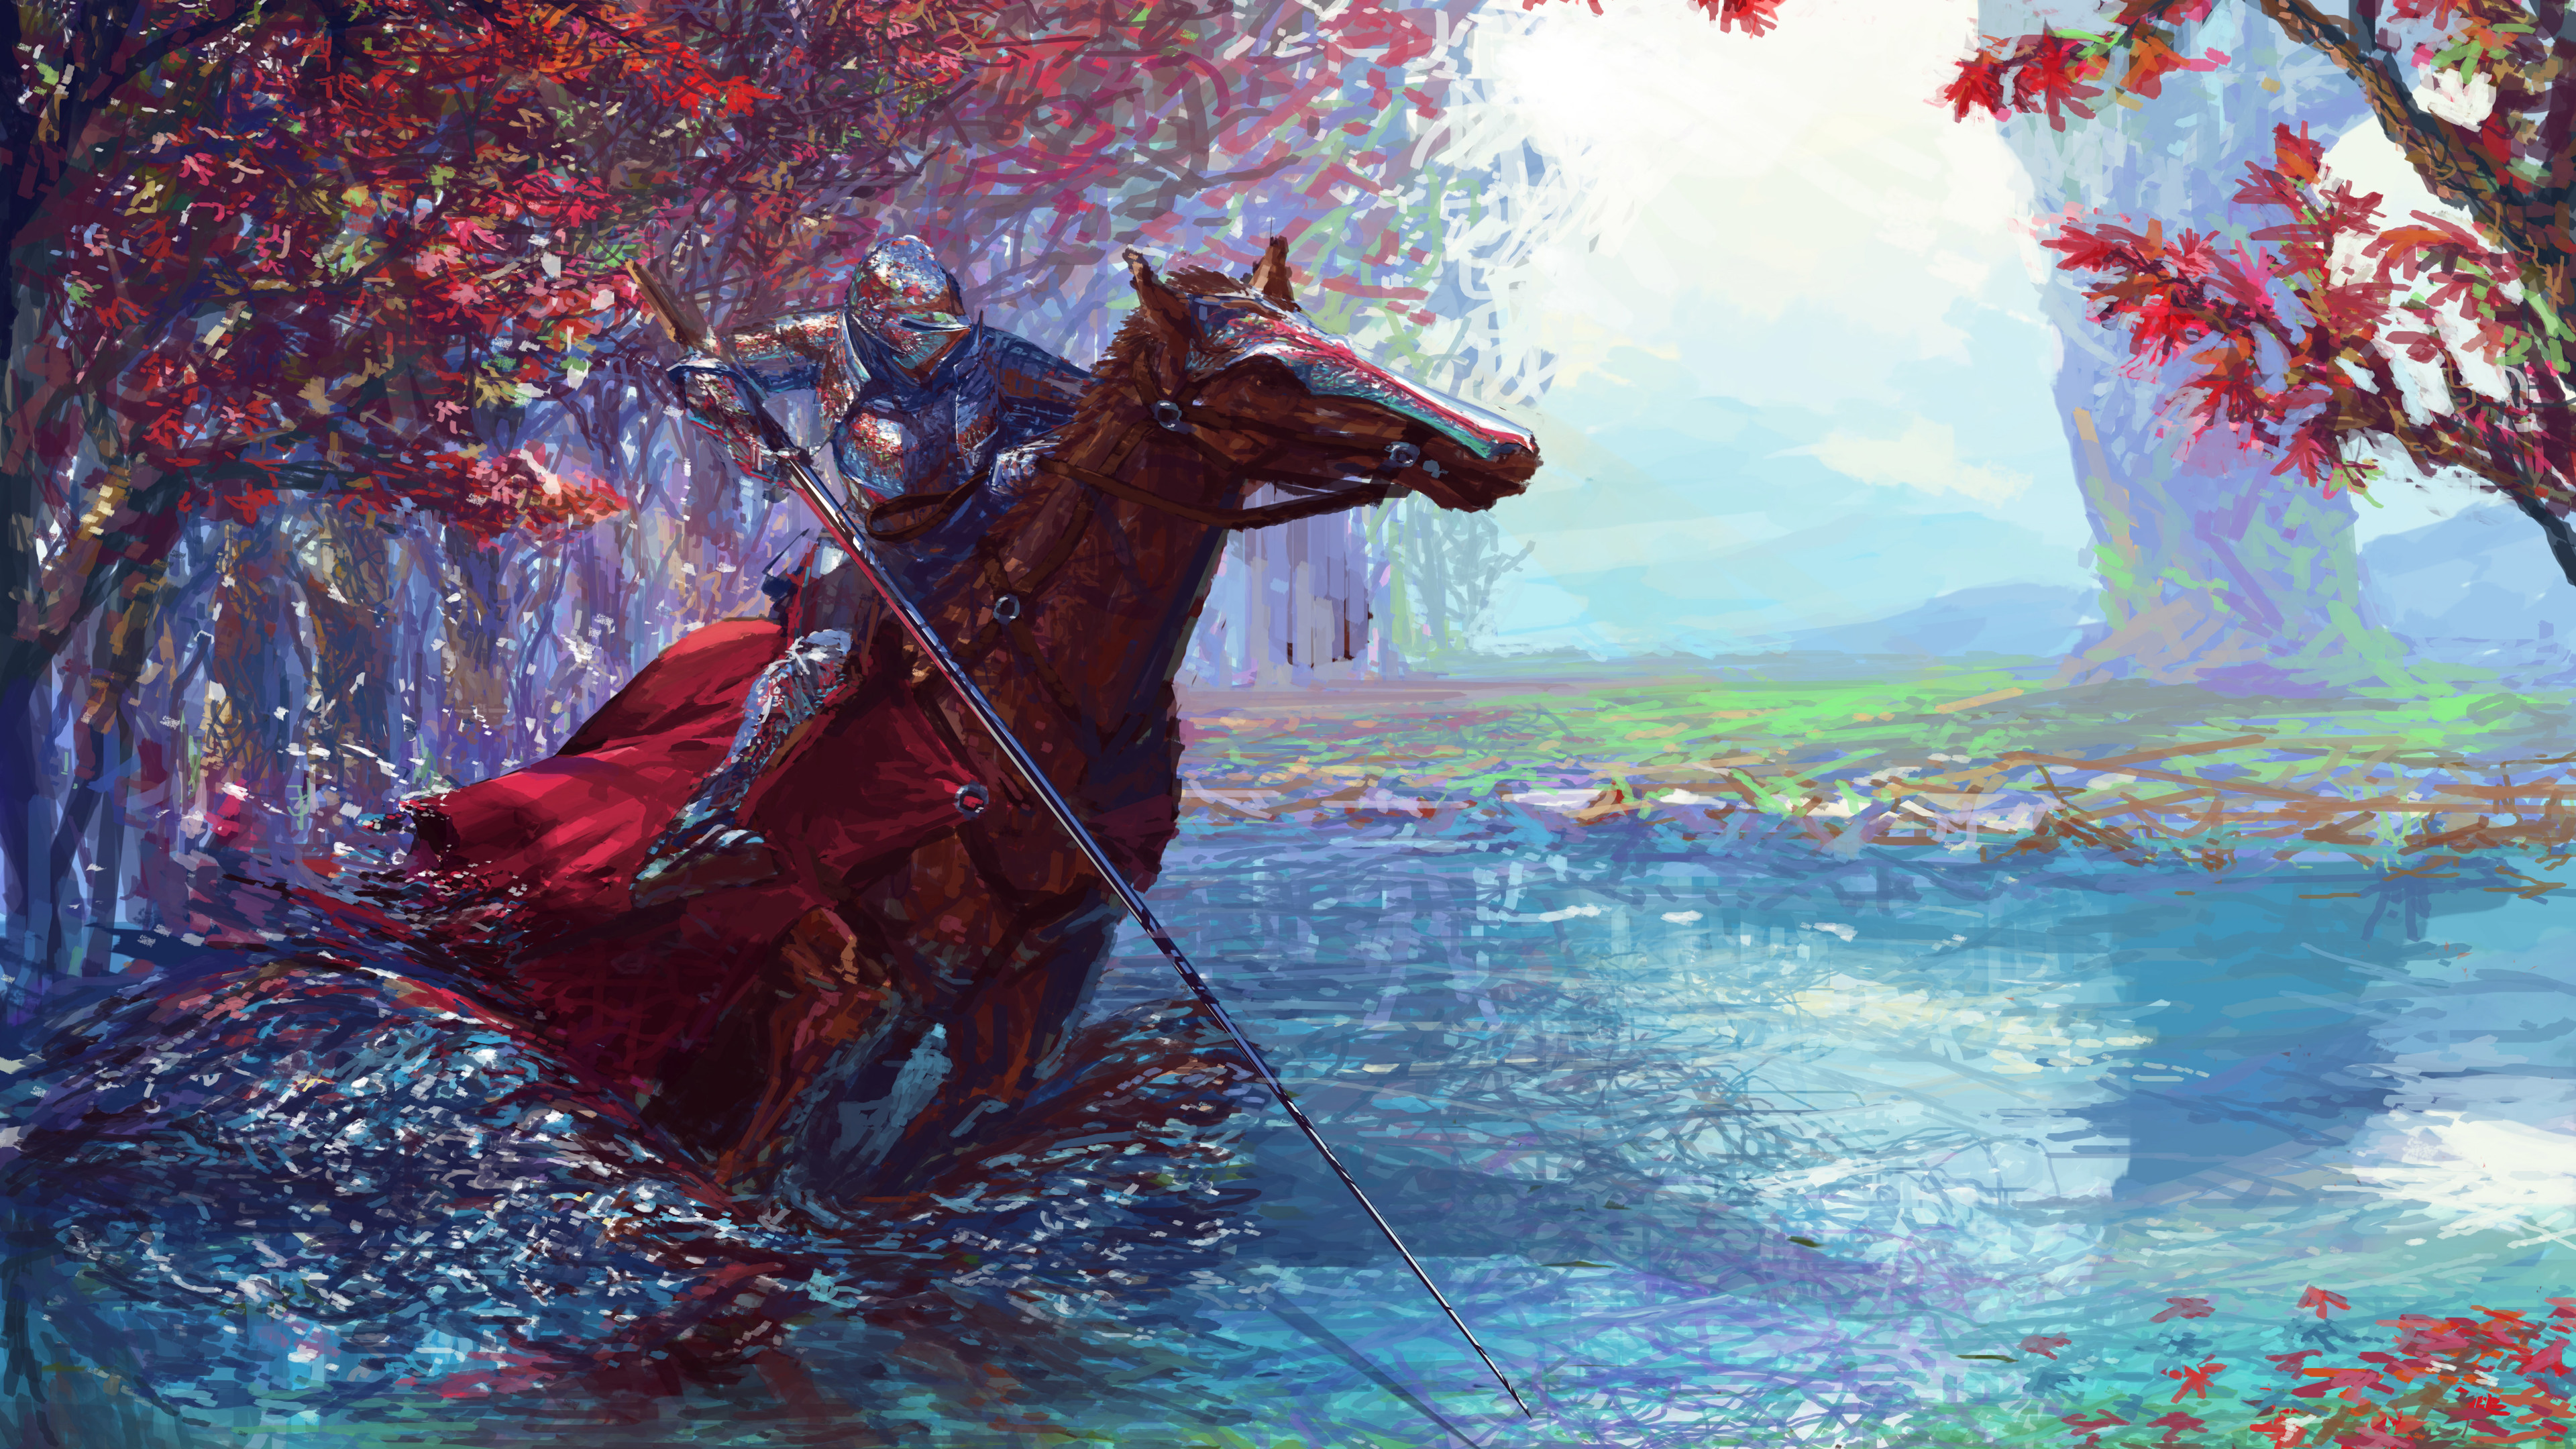 knight on horse with sword 4k 1540751654 - Knight On Horse With Sword 4k - sword wallpapers, knight wallpapers, horse wallpapers, hd-wallpapers, digital art wallpapers, deviantart wallpapers, artwork wallpapers, artist wallpapers, 5k wallpapers, 4k-wallpapers